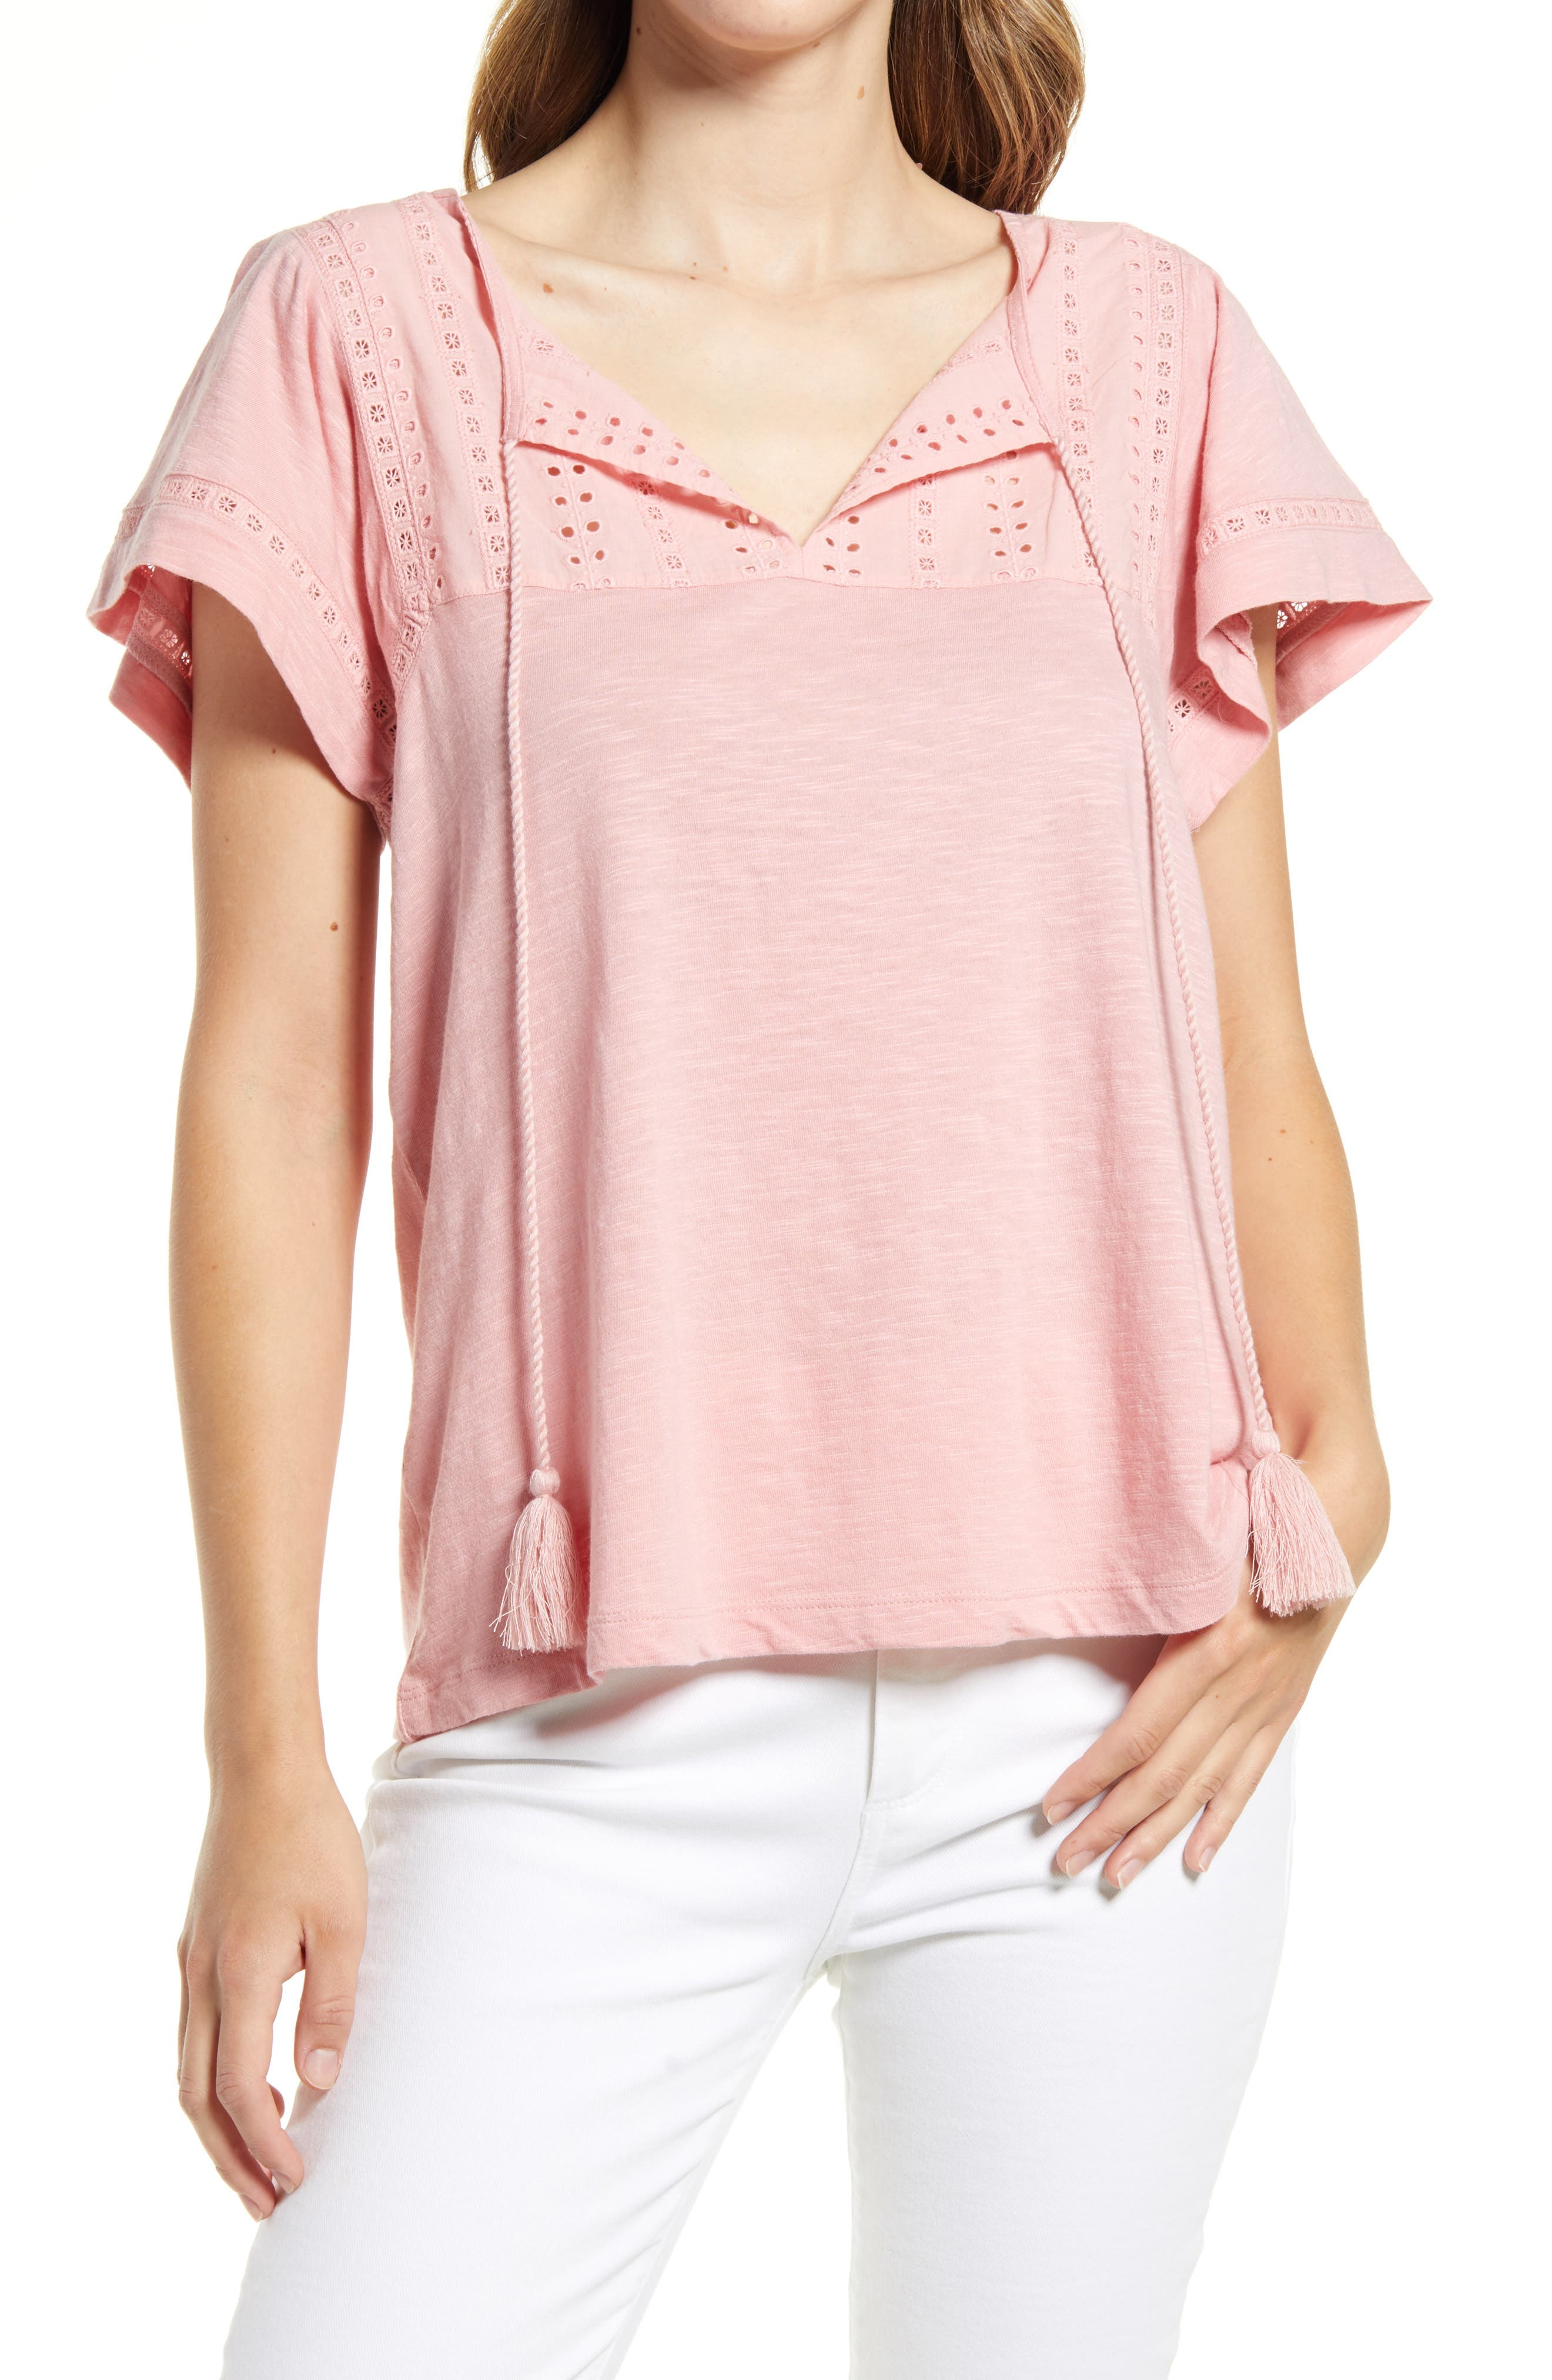 Women's Caslon Embroidered Eyelet Knit Top